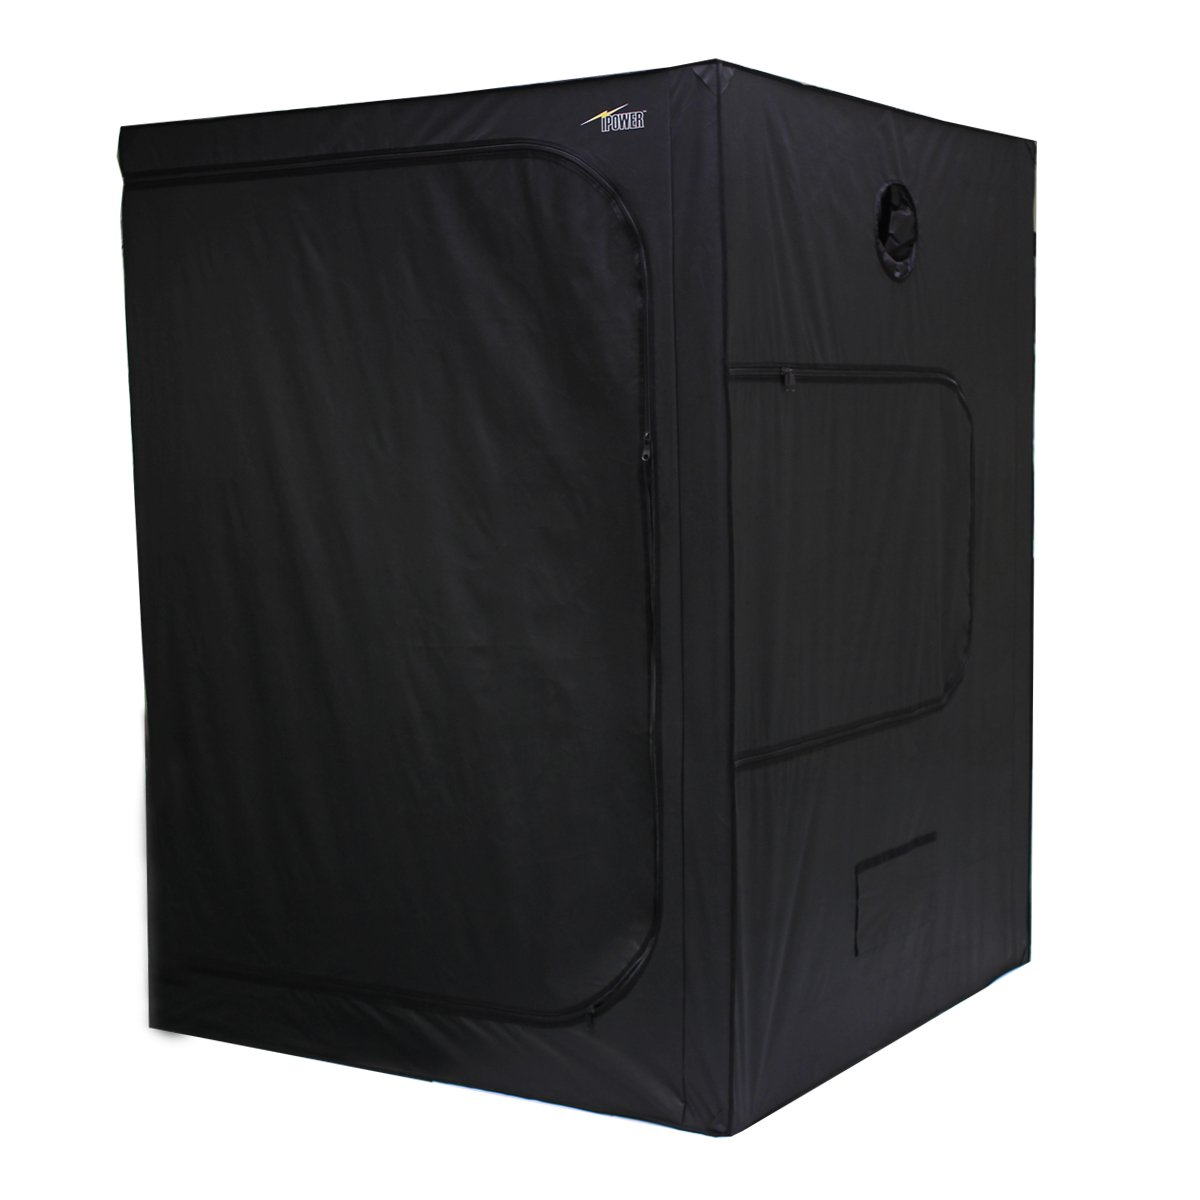 iPower 60''x60''x80'' Hydroponic Water-Resistant Grow Tent with Removable Floor Tray for Indoor Seedling Plant Growing 5'x5'